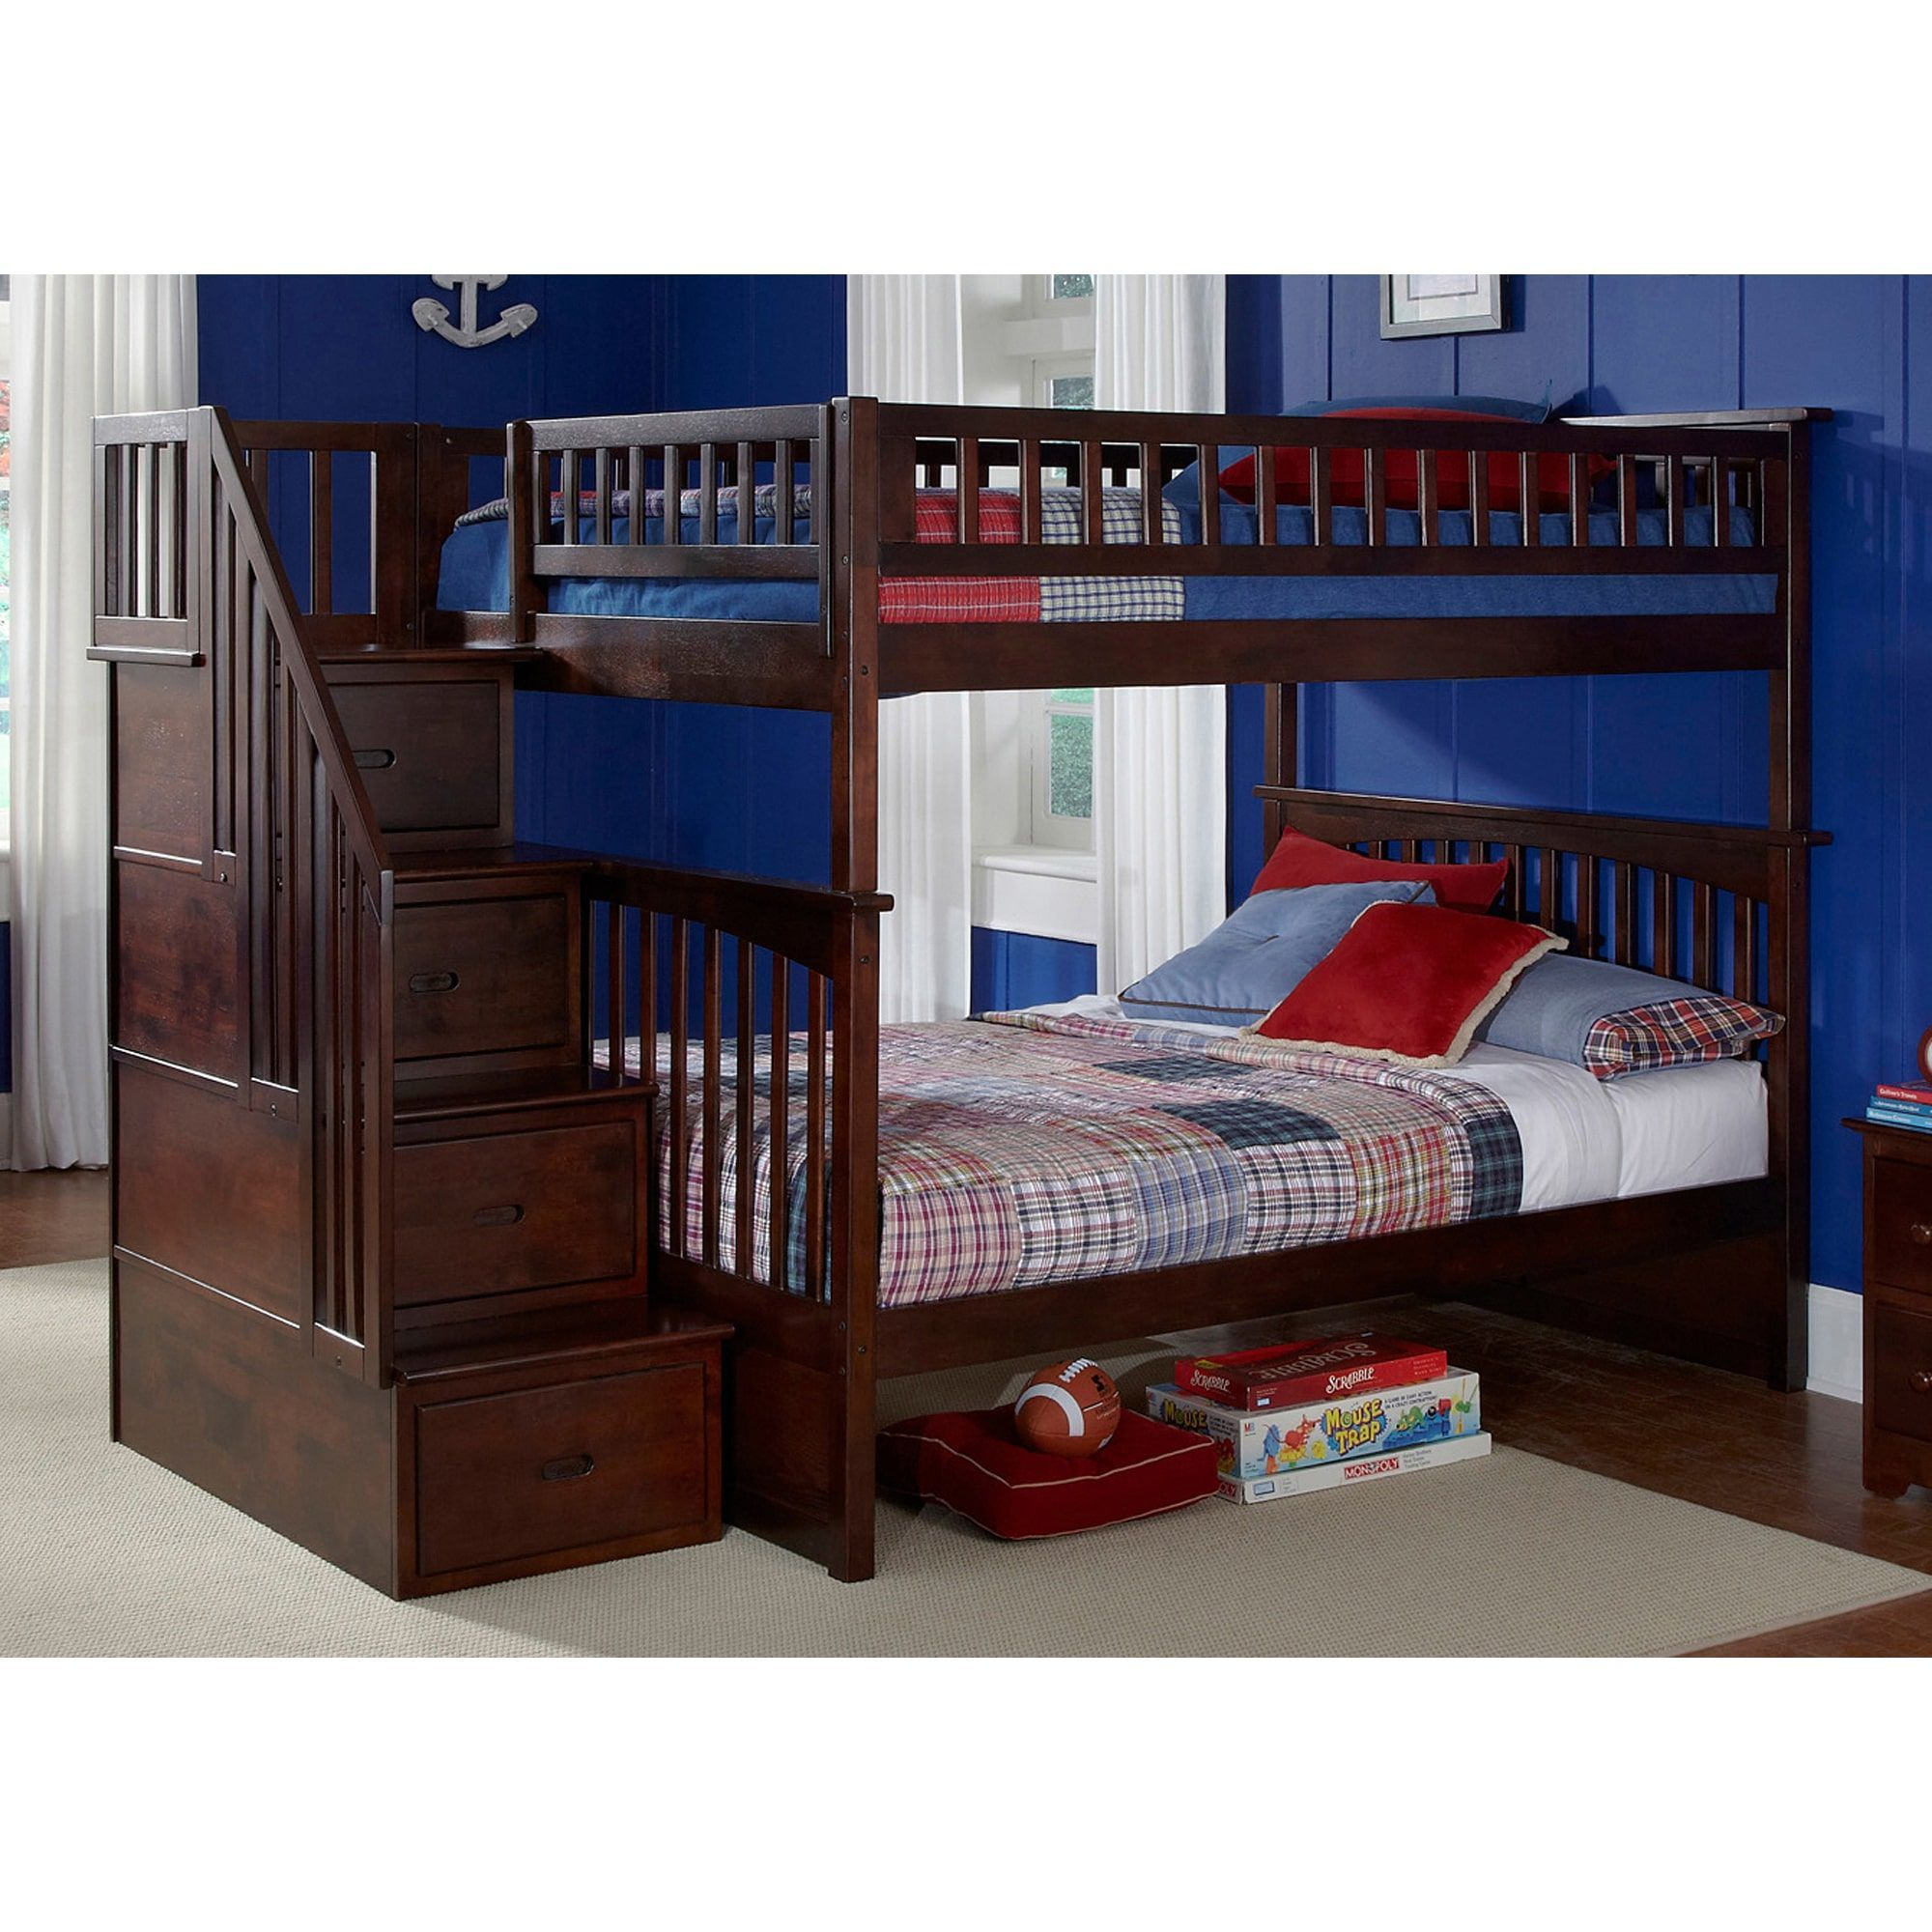 Queen loft bed ideas  Atlantic Furniture Columbia Staircase Bunk Bed Full over Full in